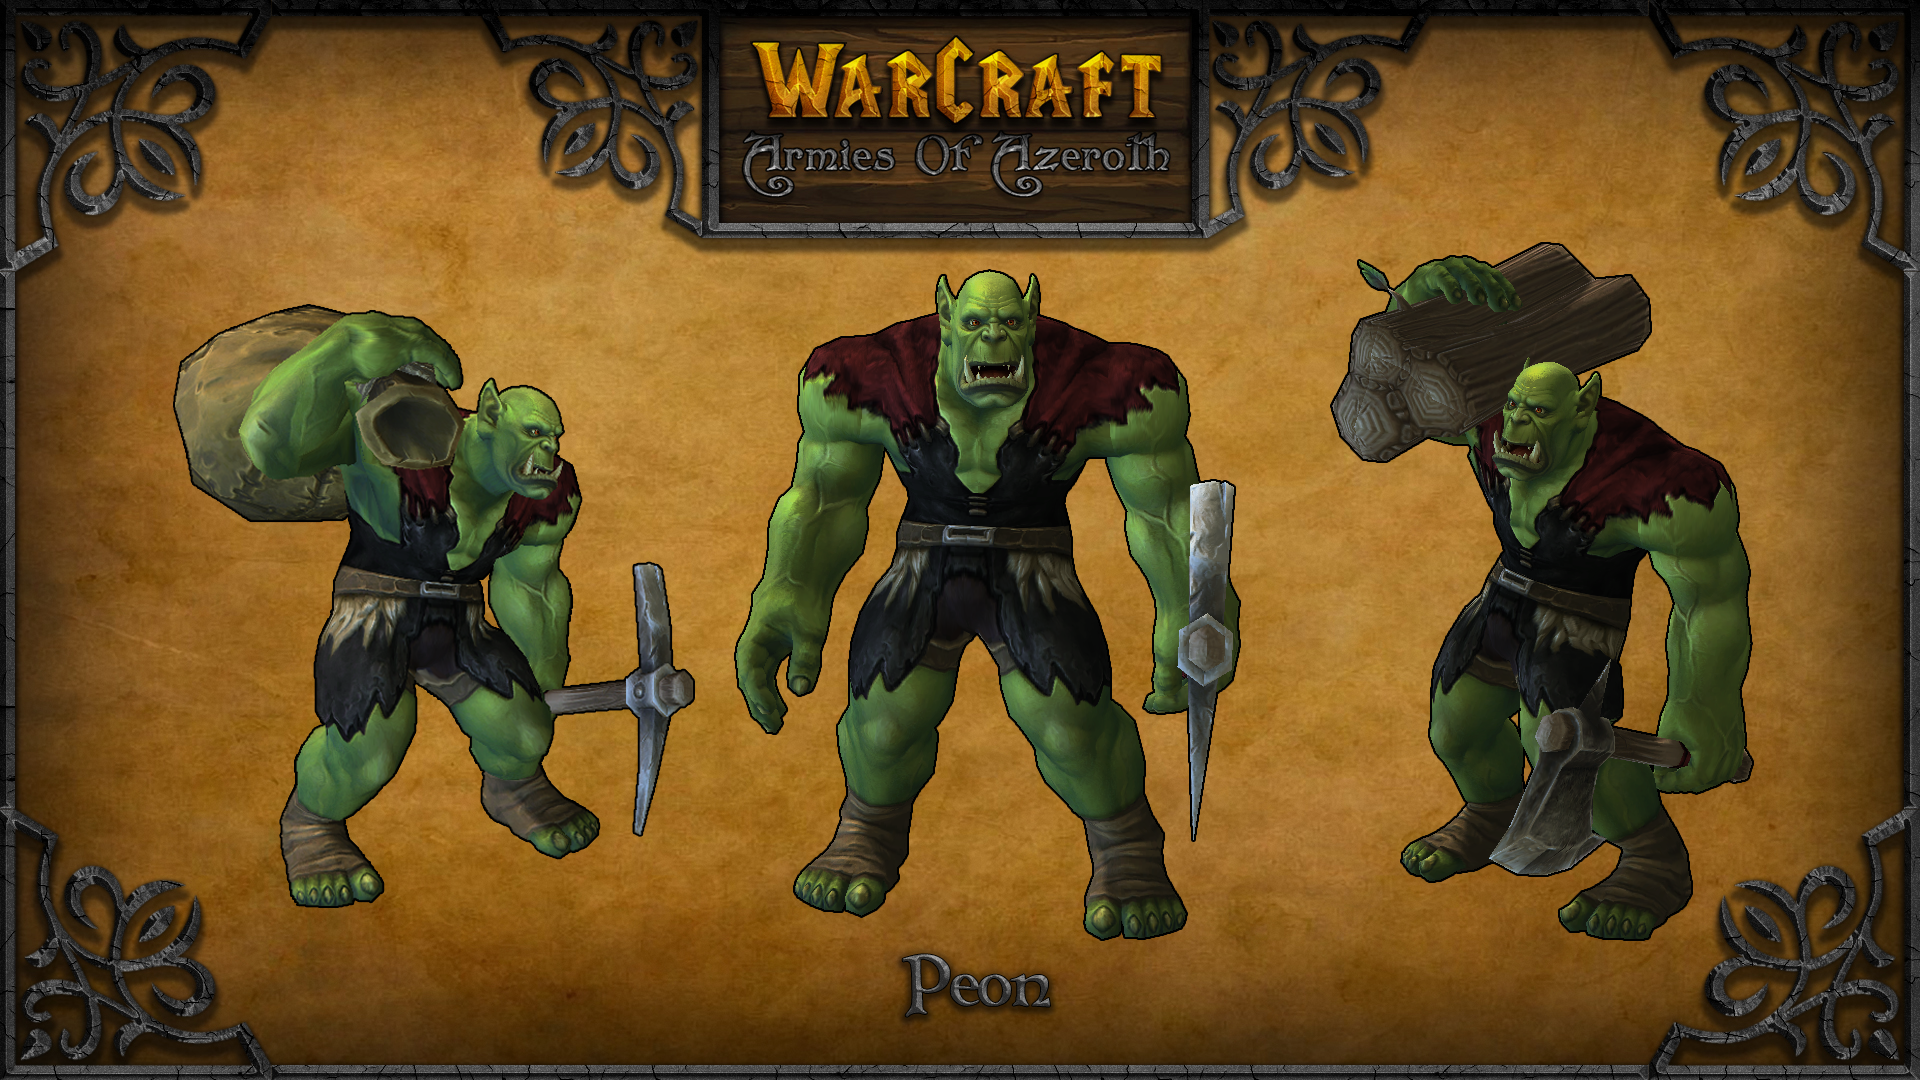 Warcraft 3 Recreated in StarCraft 2 Mod | The Escapist